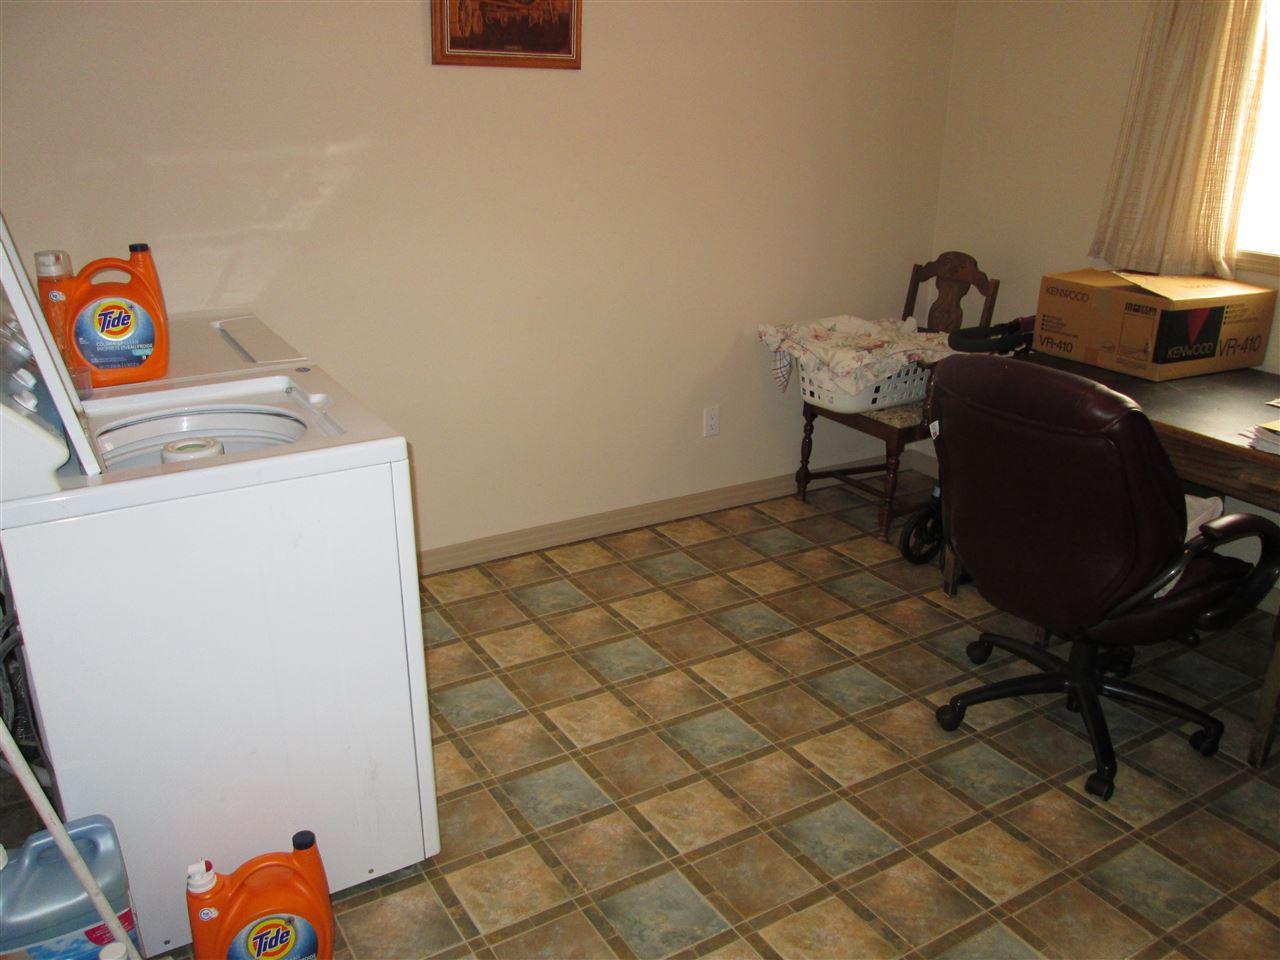 Used as an utility room/study. Can be reverted back to a bedroom.